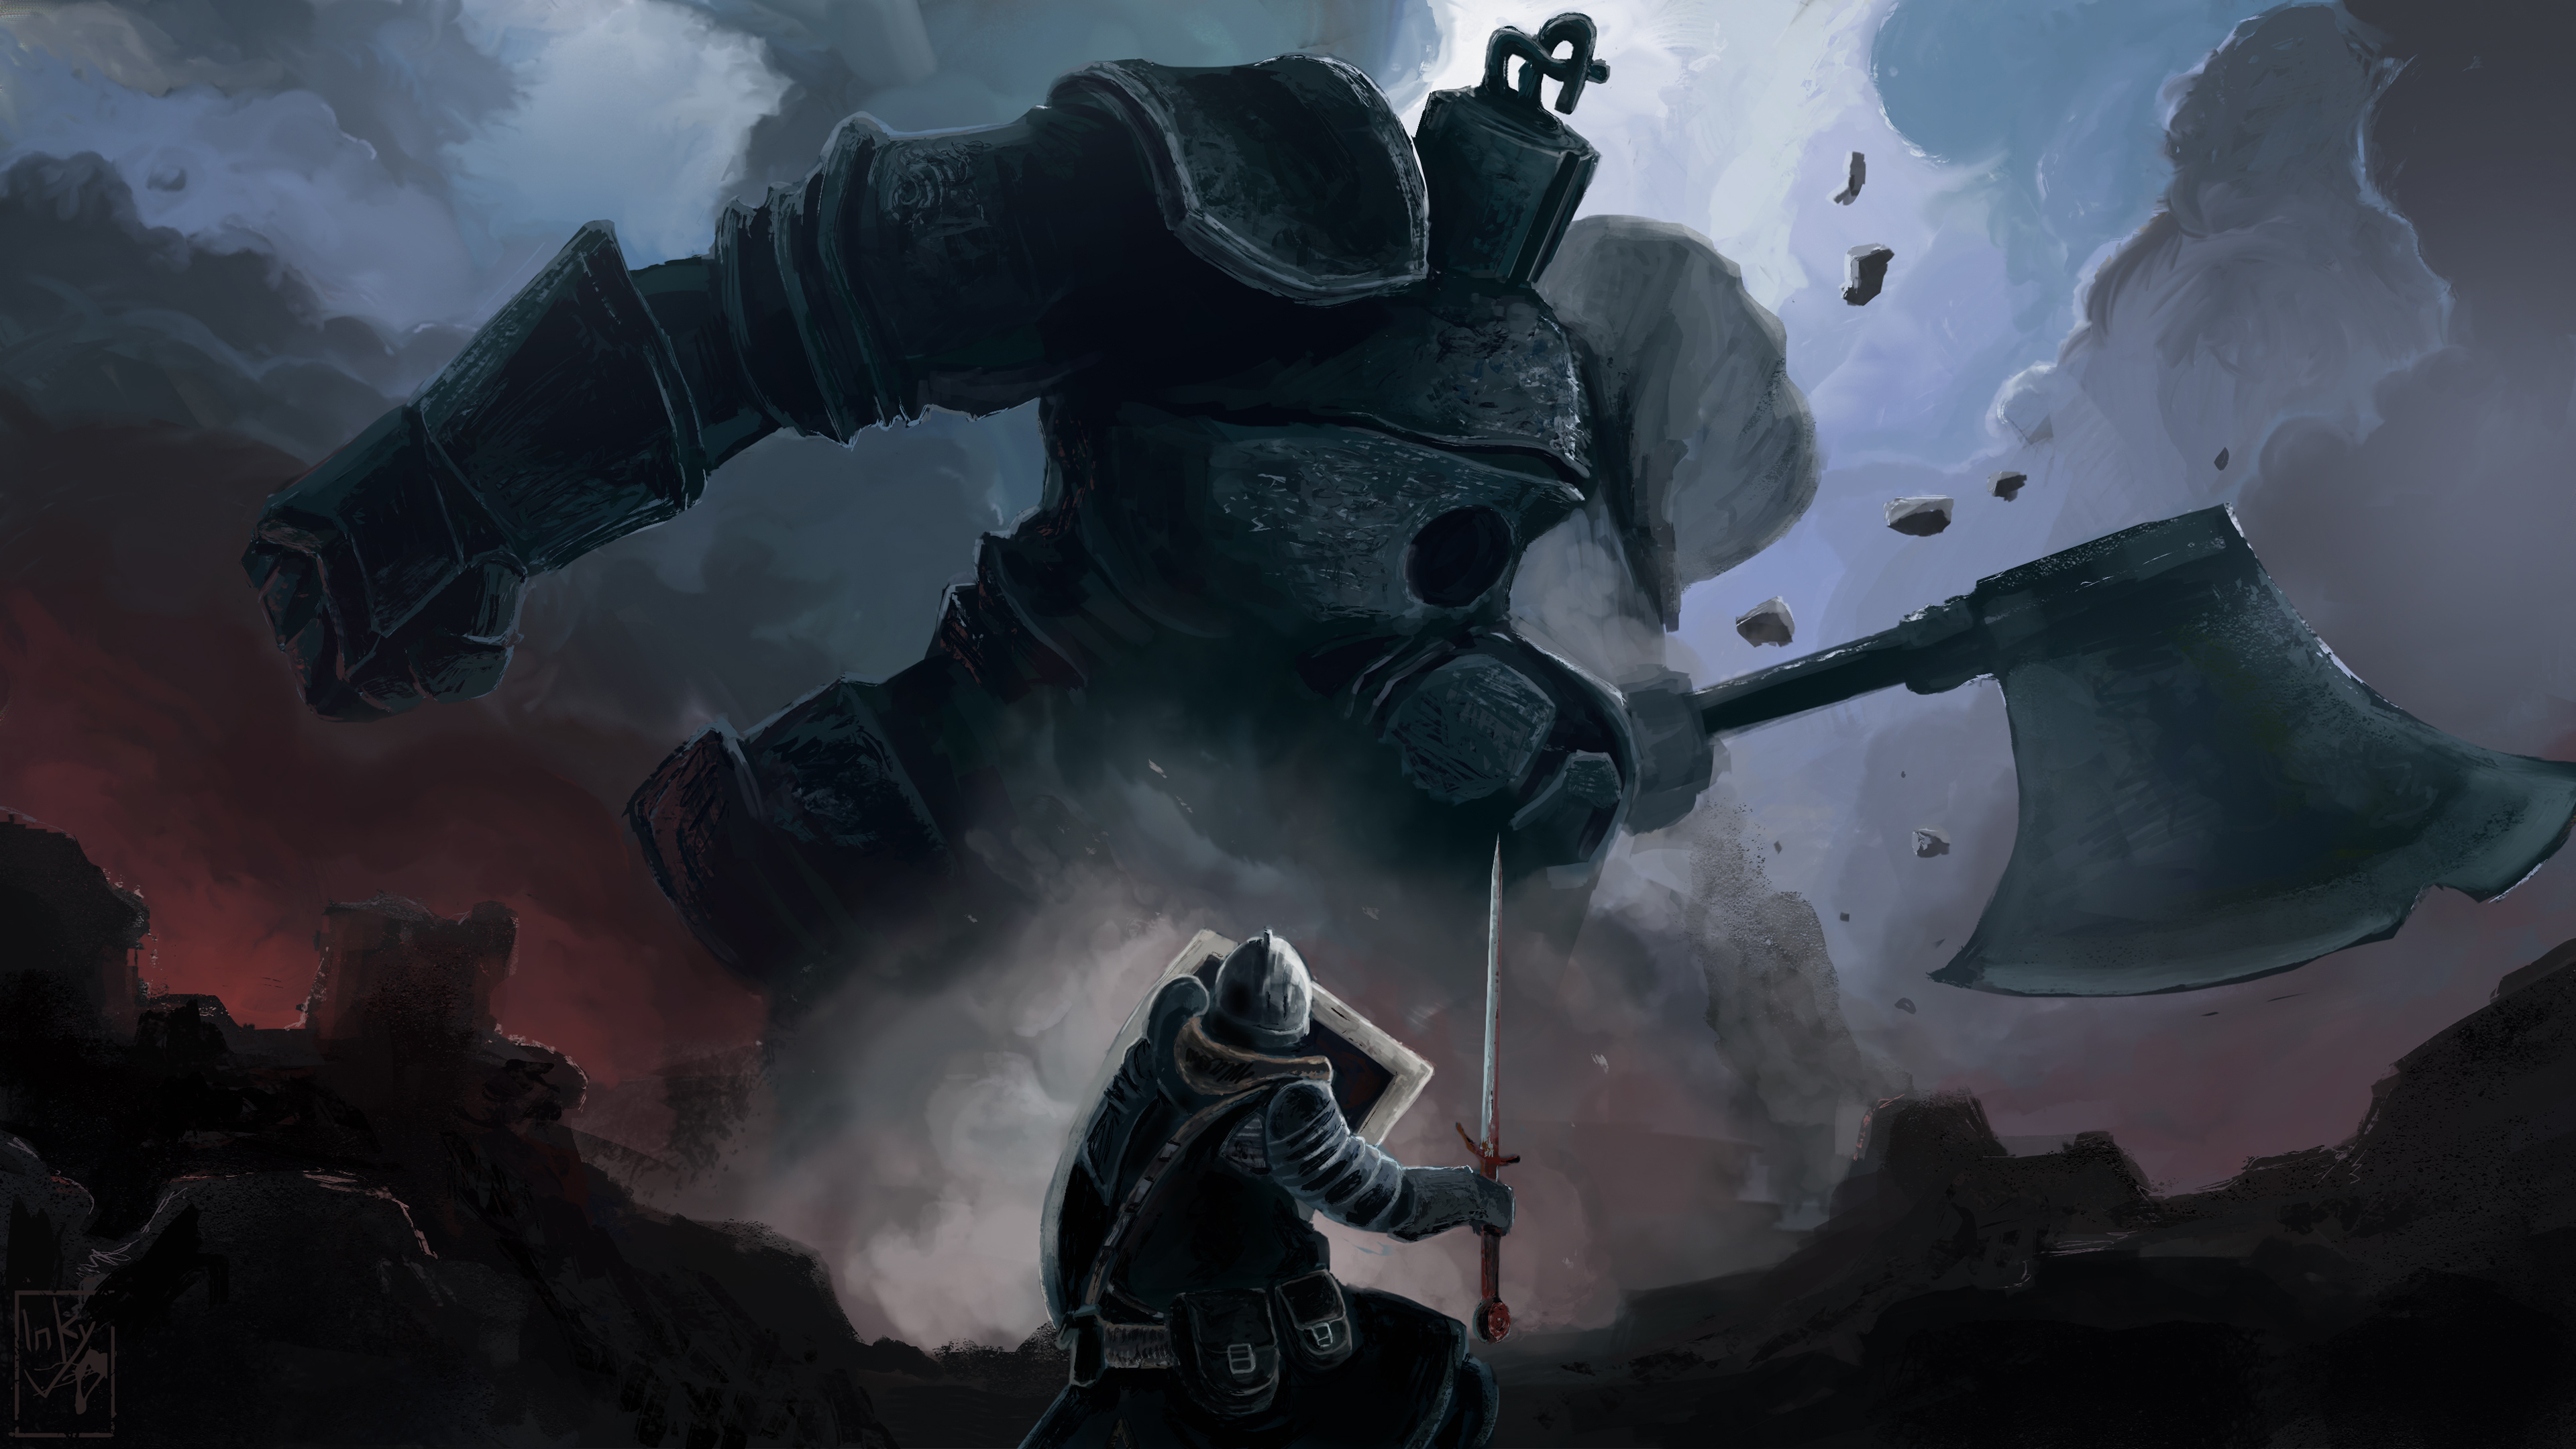 1536x2048 4k Dark Souls Iron Golem 1536x2048 Resolution Wallpaper Hd Games 4k Wallpapers Images Photos And Background Wallpapers Den